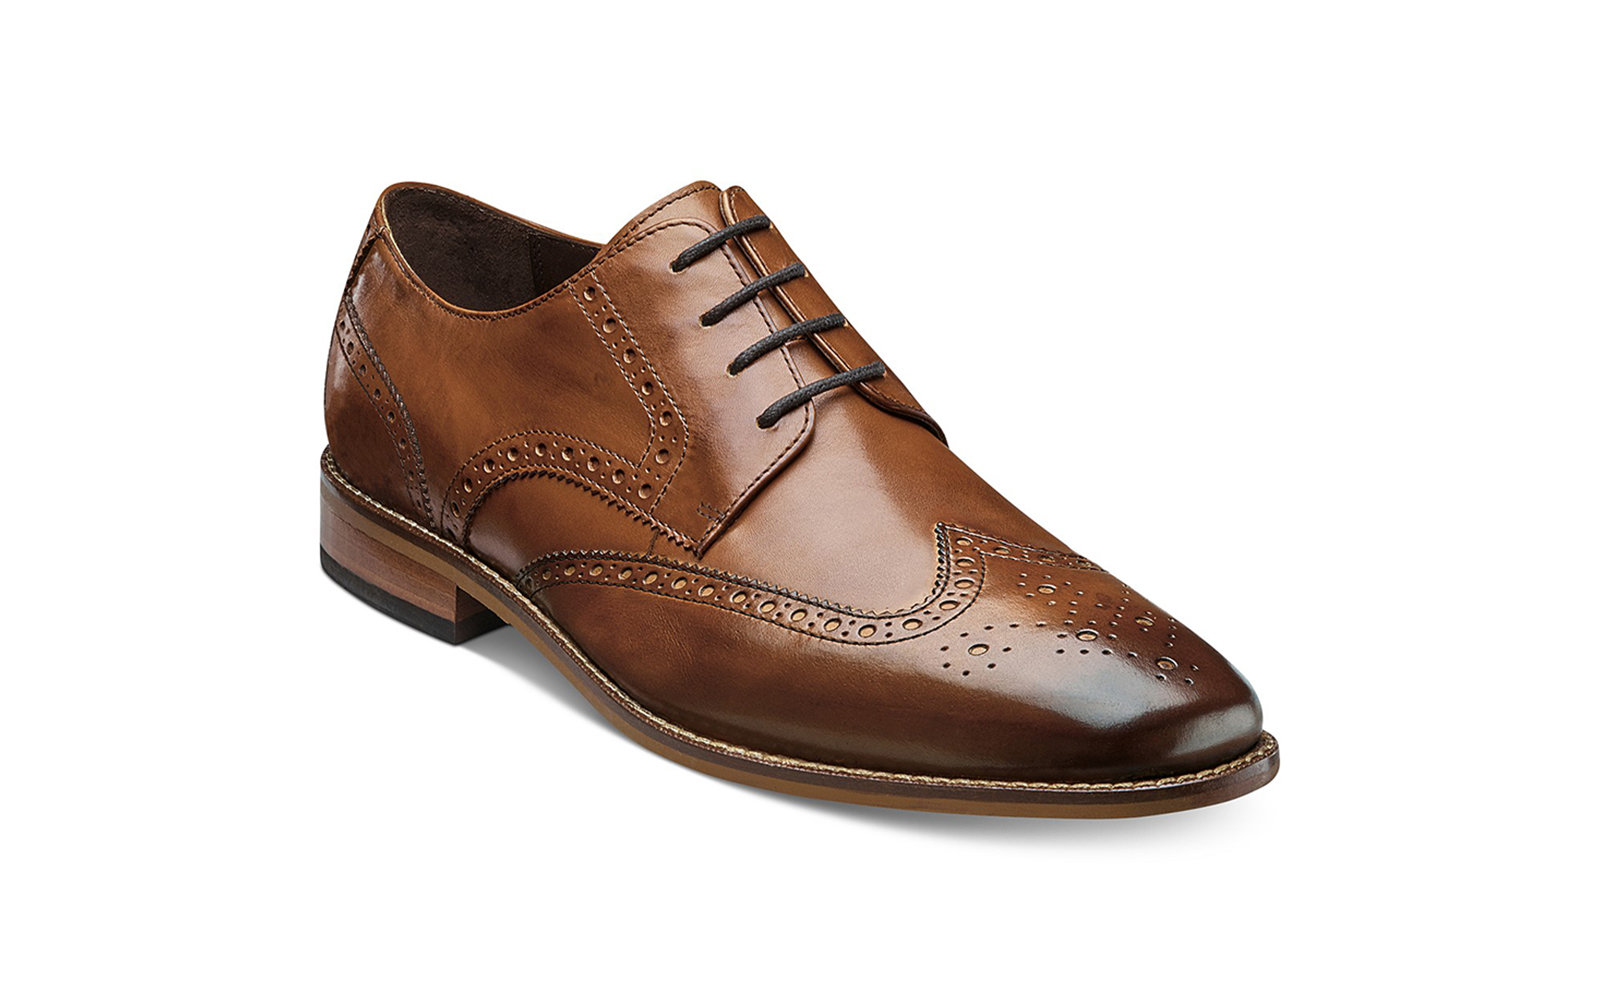 40be8f8e7d7 The 12 Most Comfortable Dress Shoes for Men